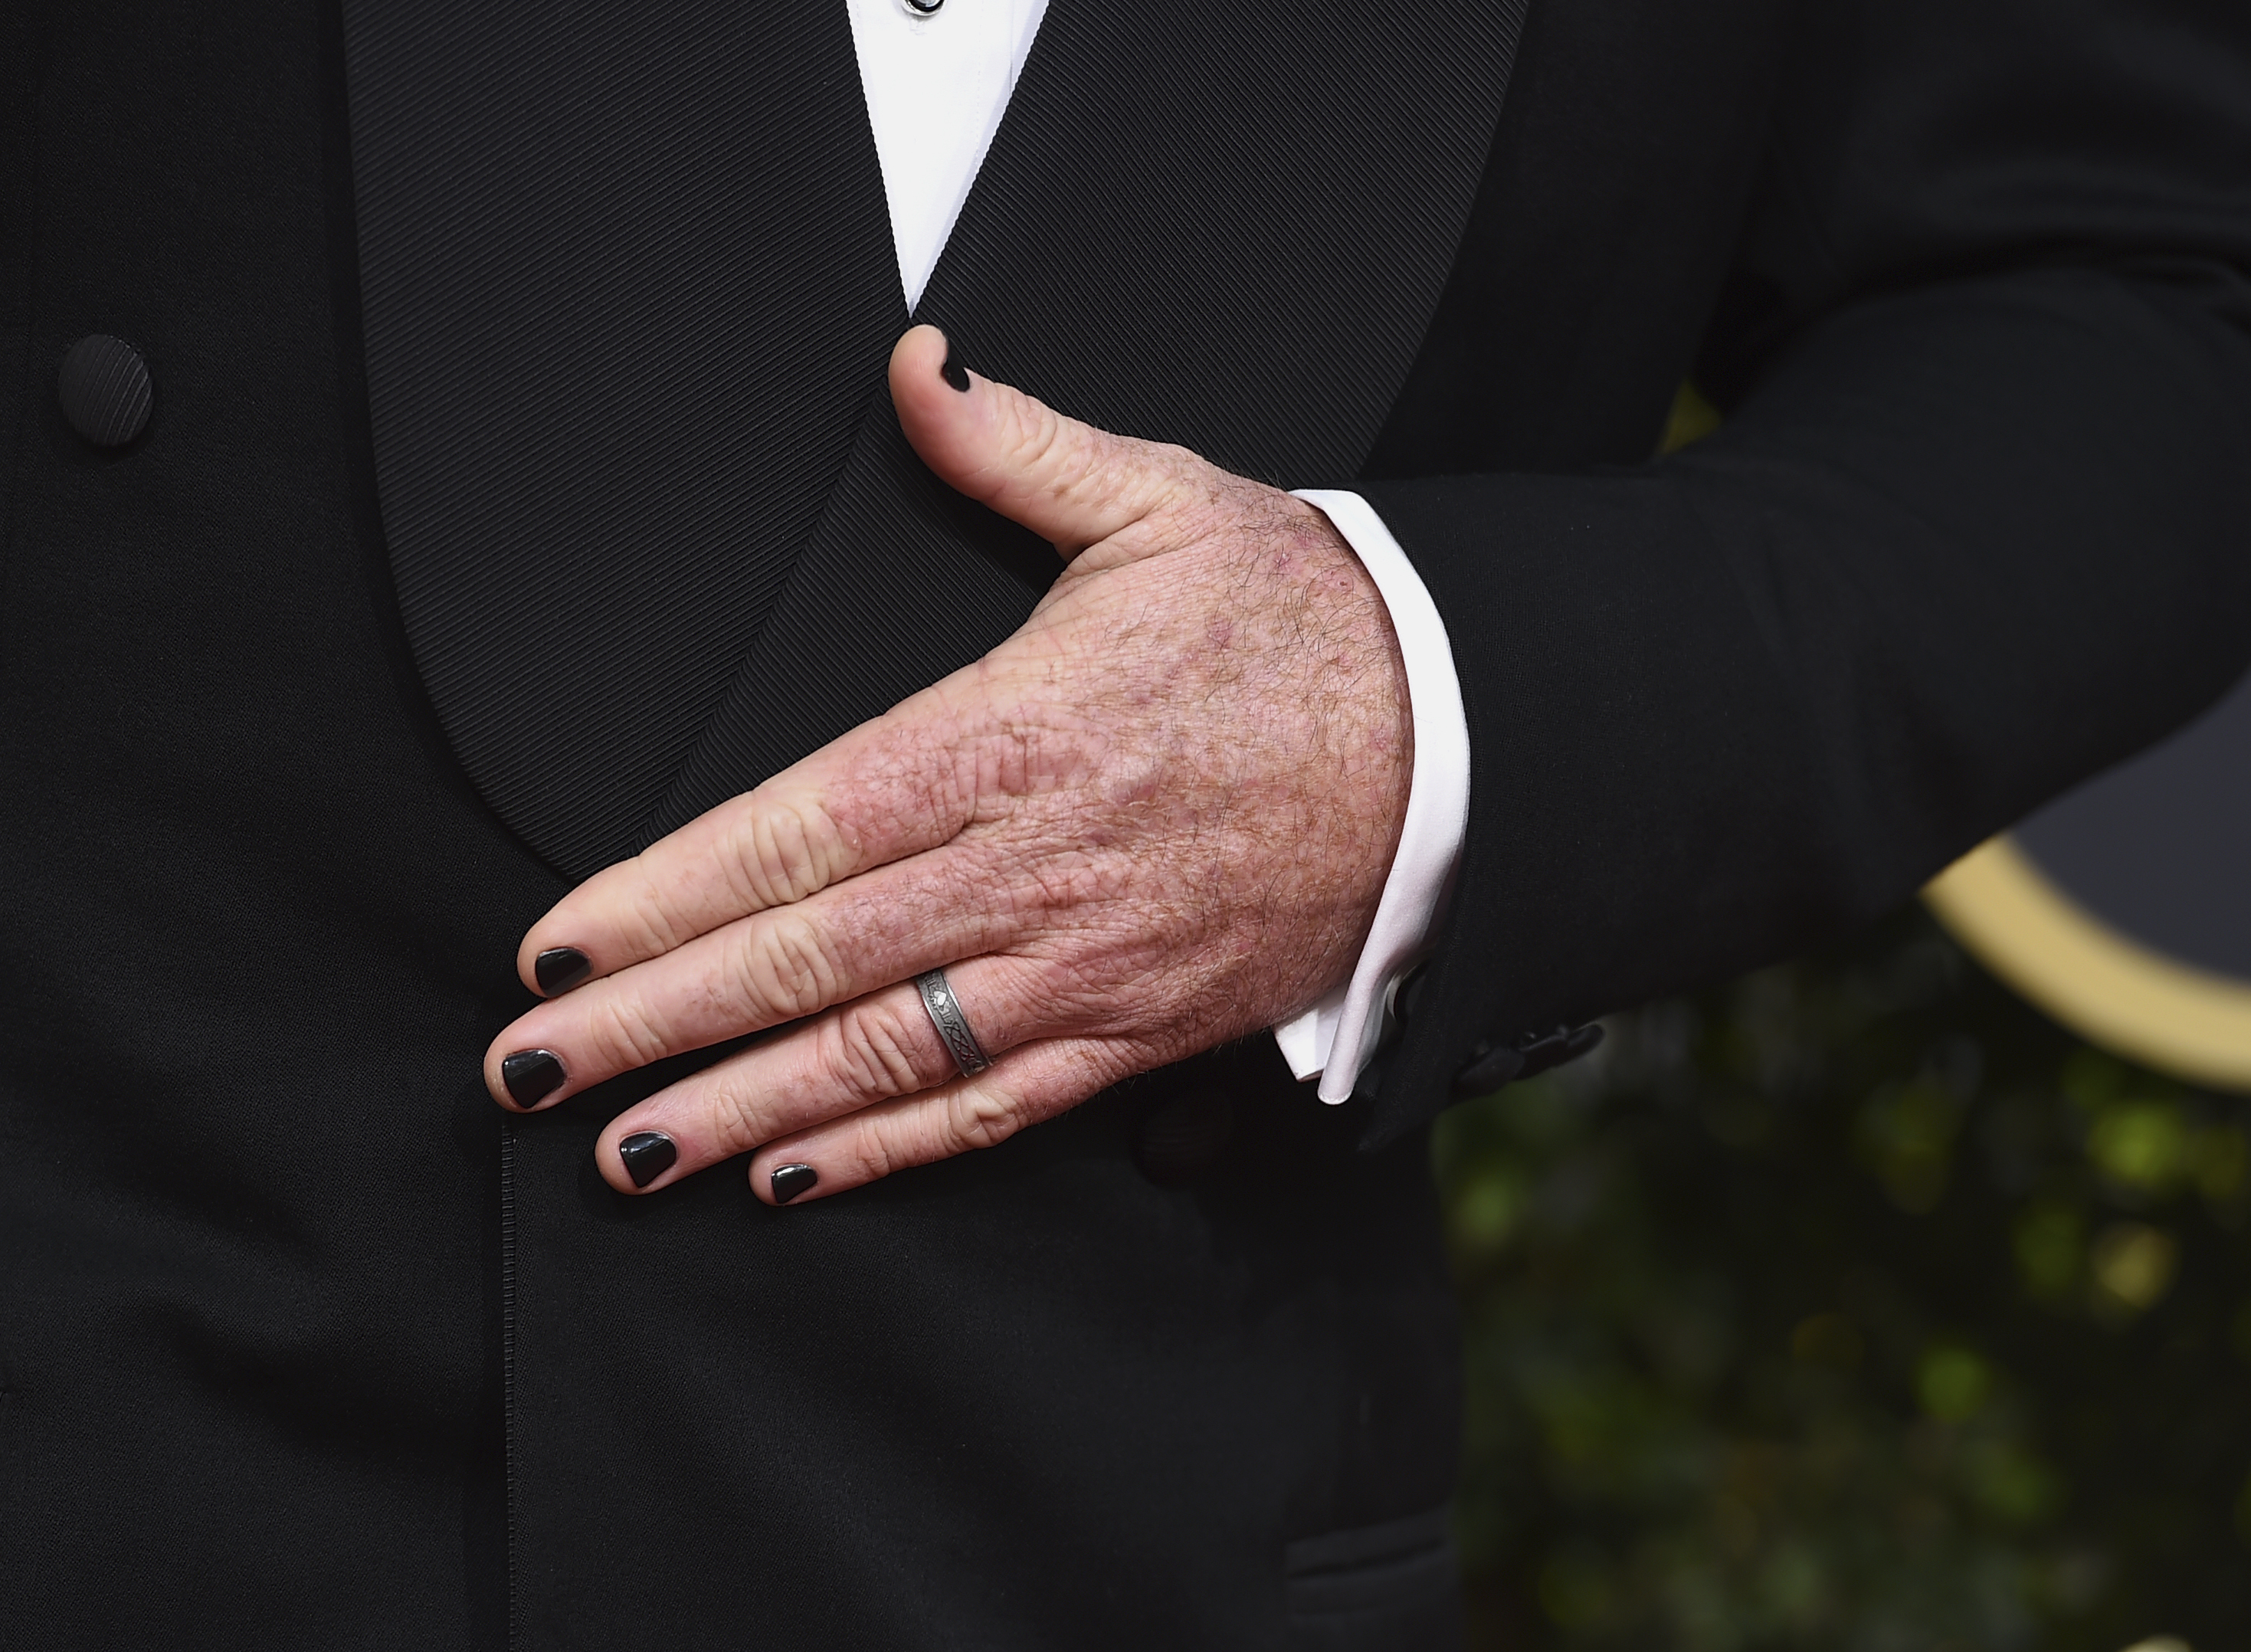 <div class='meta'><div class='origin-logo' data-origin='AP'></div><span class='caption-text' data-credit='Jordan Strauss/Invision/AP'>Chris Sullivan wears black nail polish as he arrives at the 75th annual Golden Globe Awards at the Beverly Hilton Hotel on Sunday, Jan. 7, 2018, in Beverly Hills, Calif.</span></div>